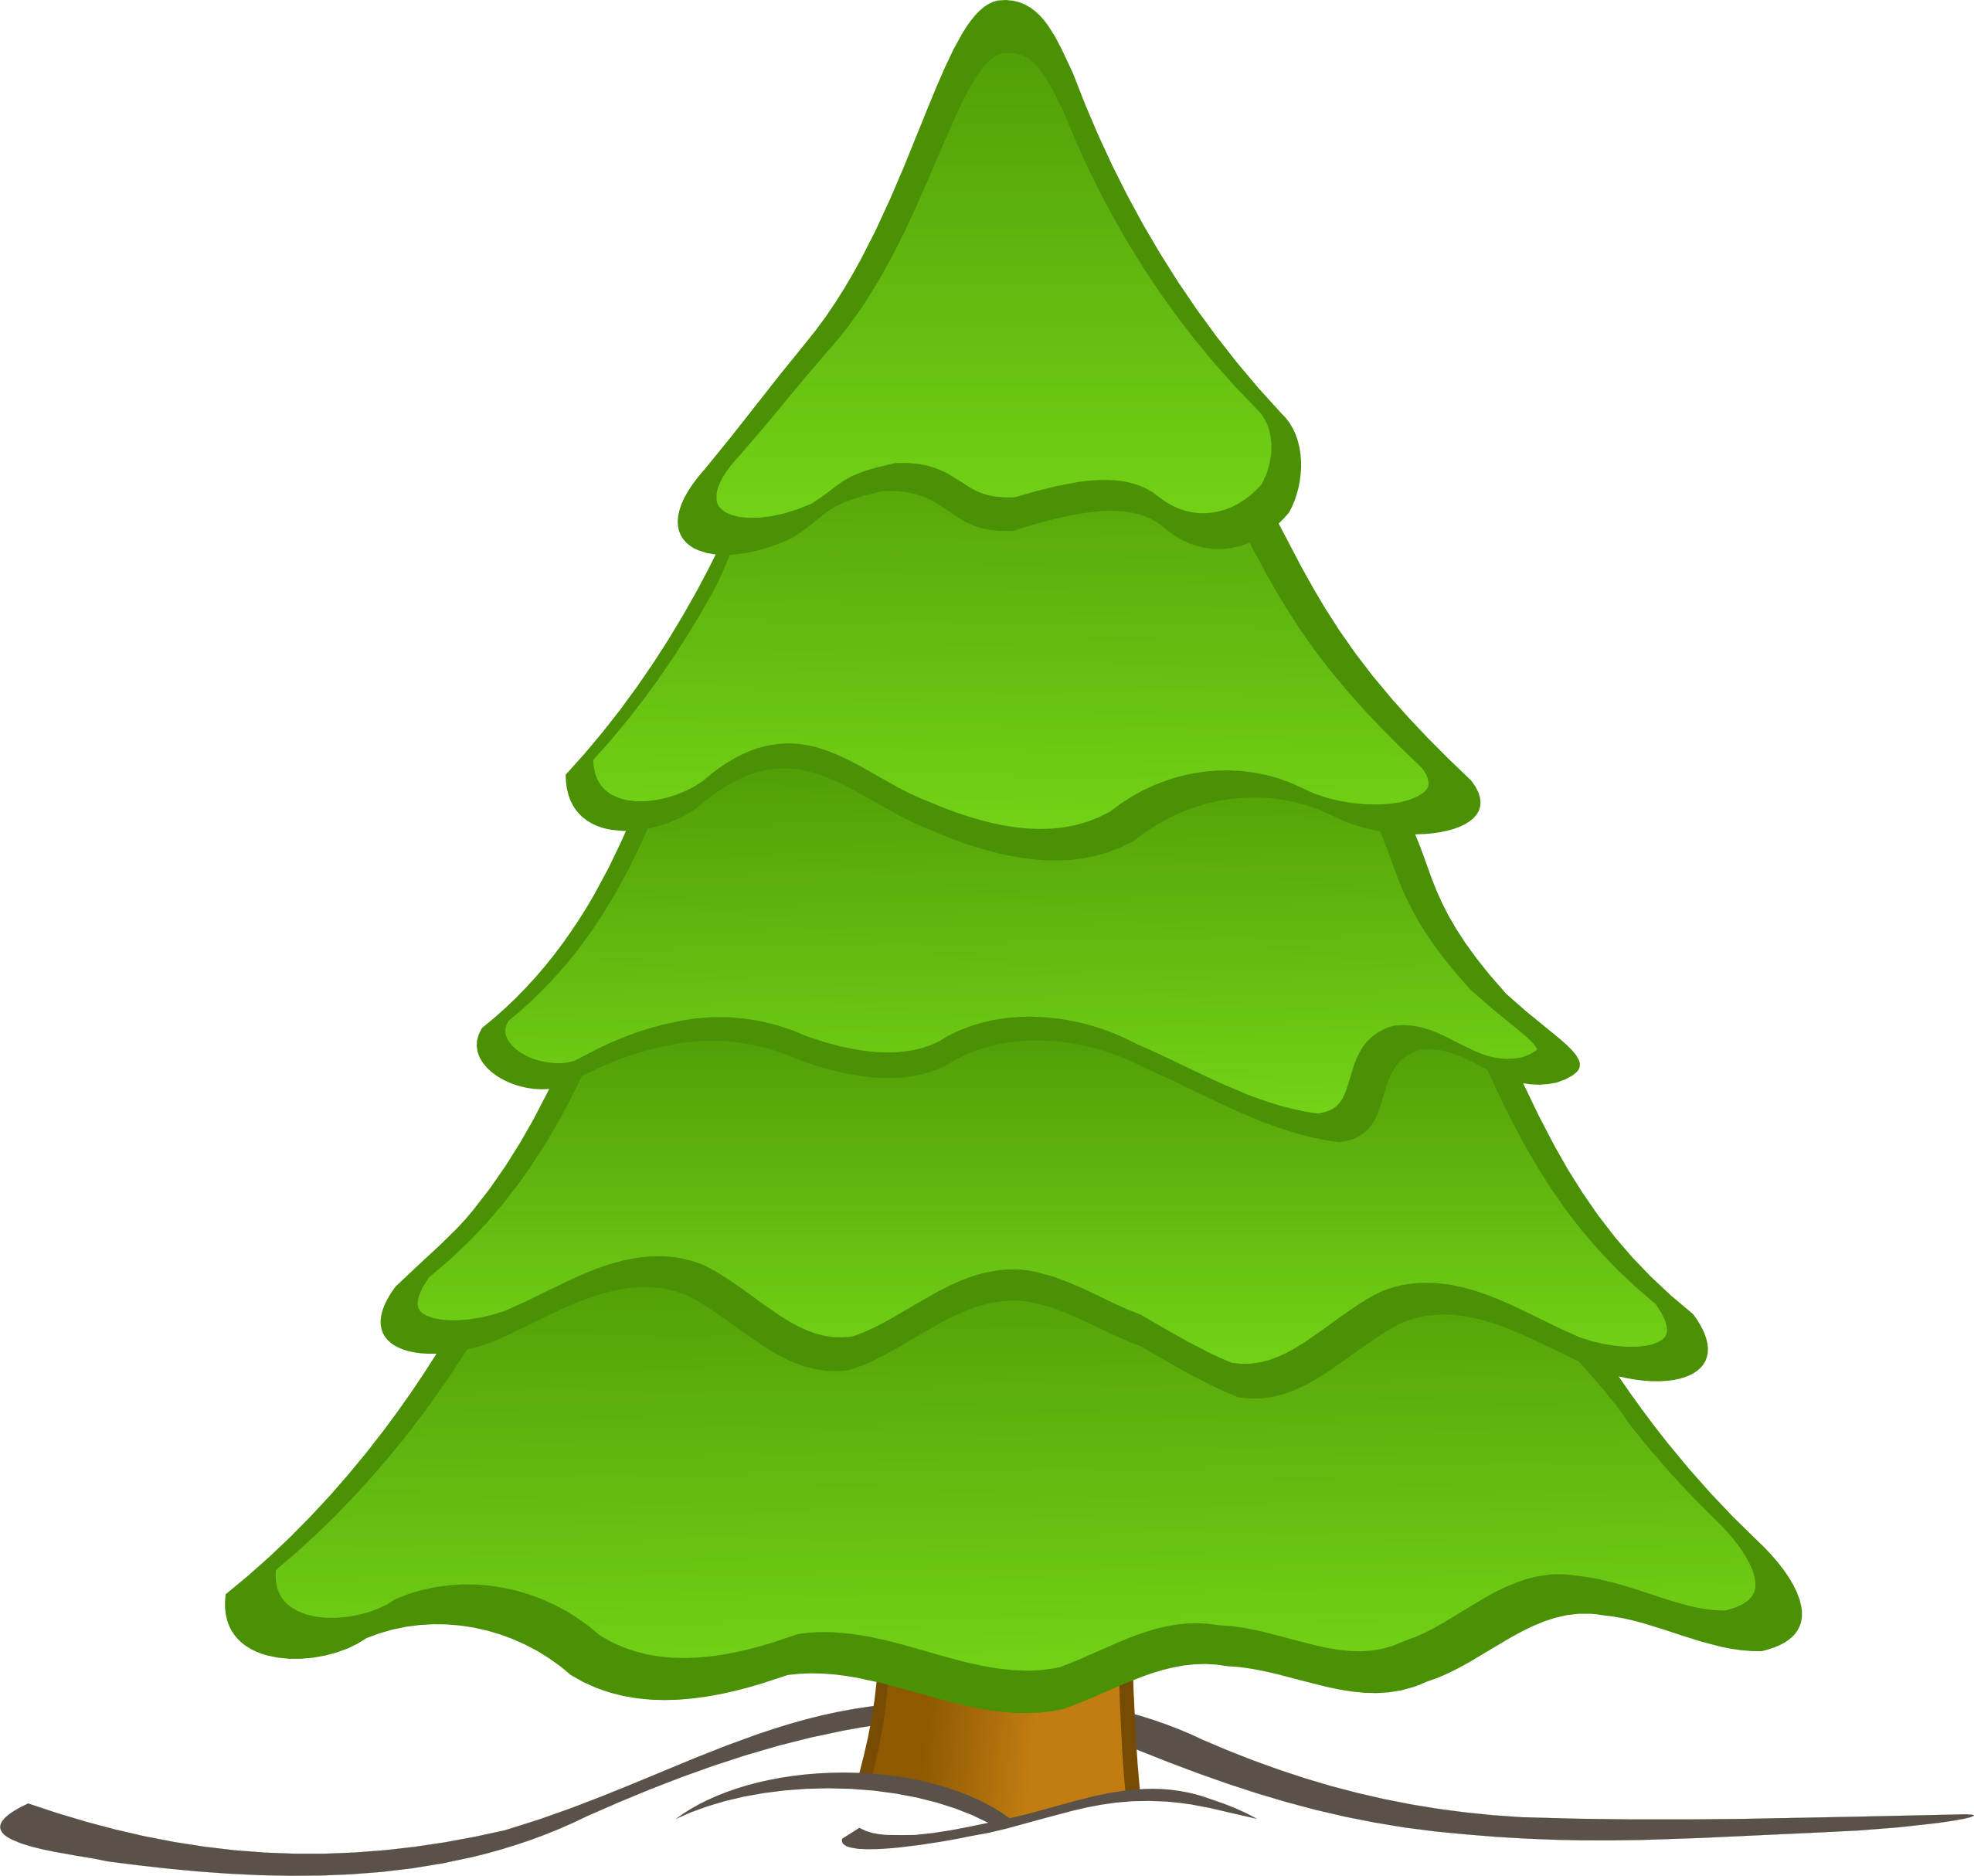 Plain Christmas Tree Clipart.